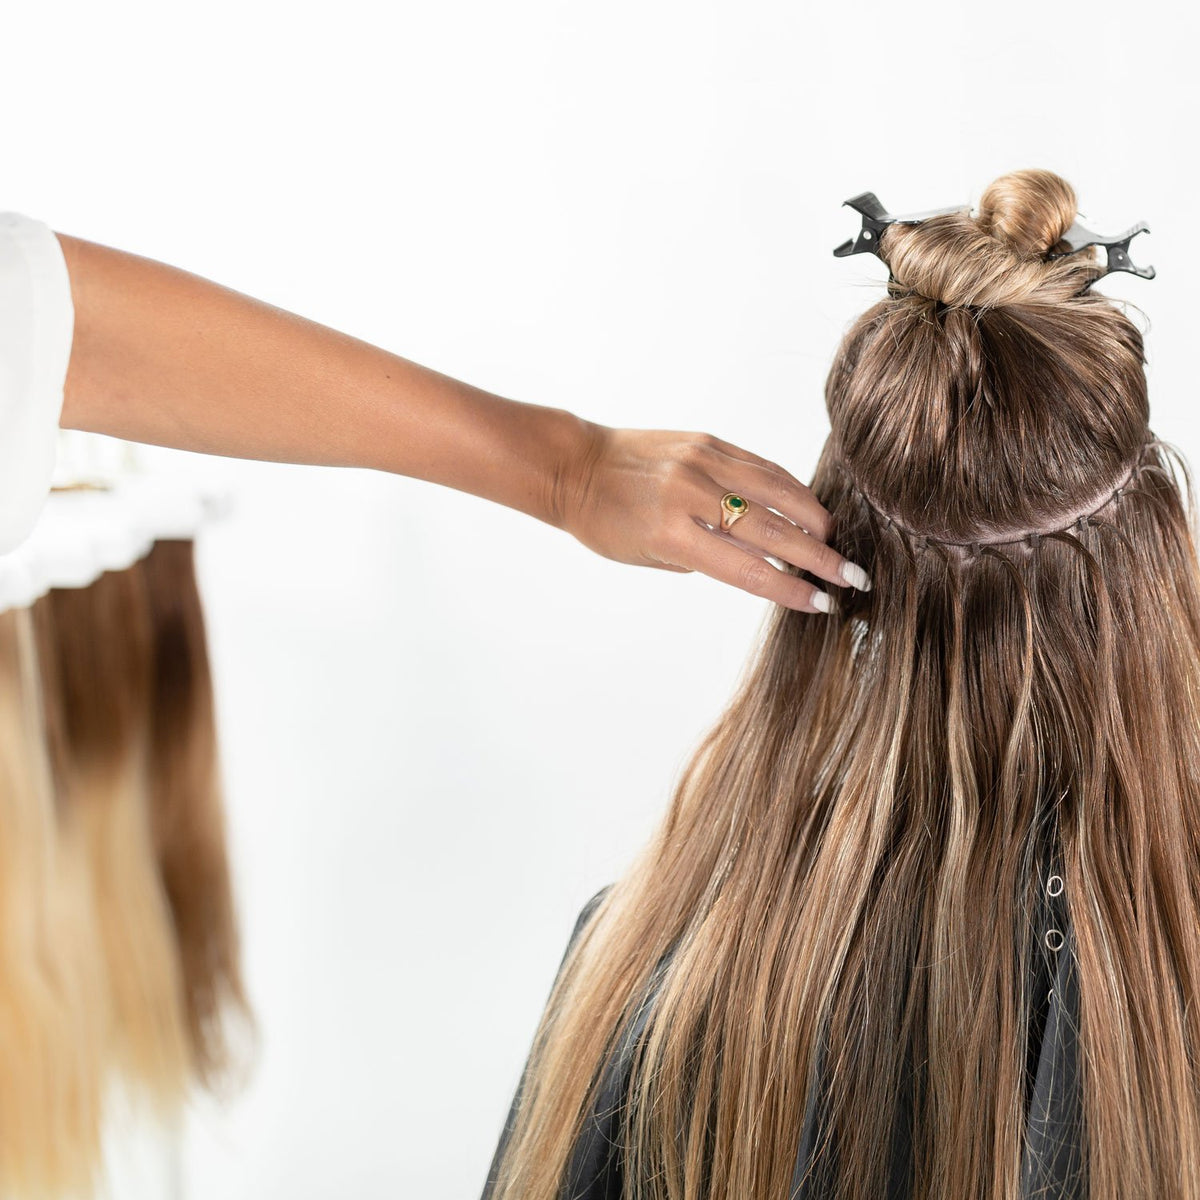 Ticket - Laced Hair Beaded Weft Extension Training Course (Albuquerque, NM)